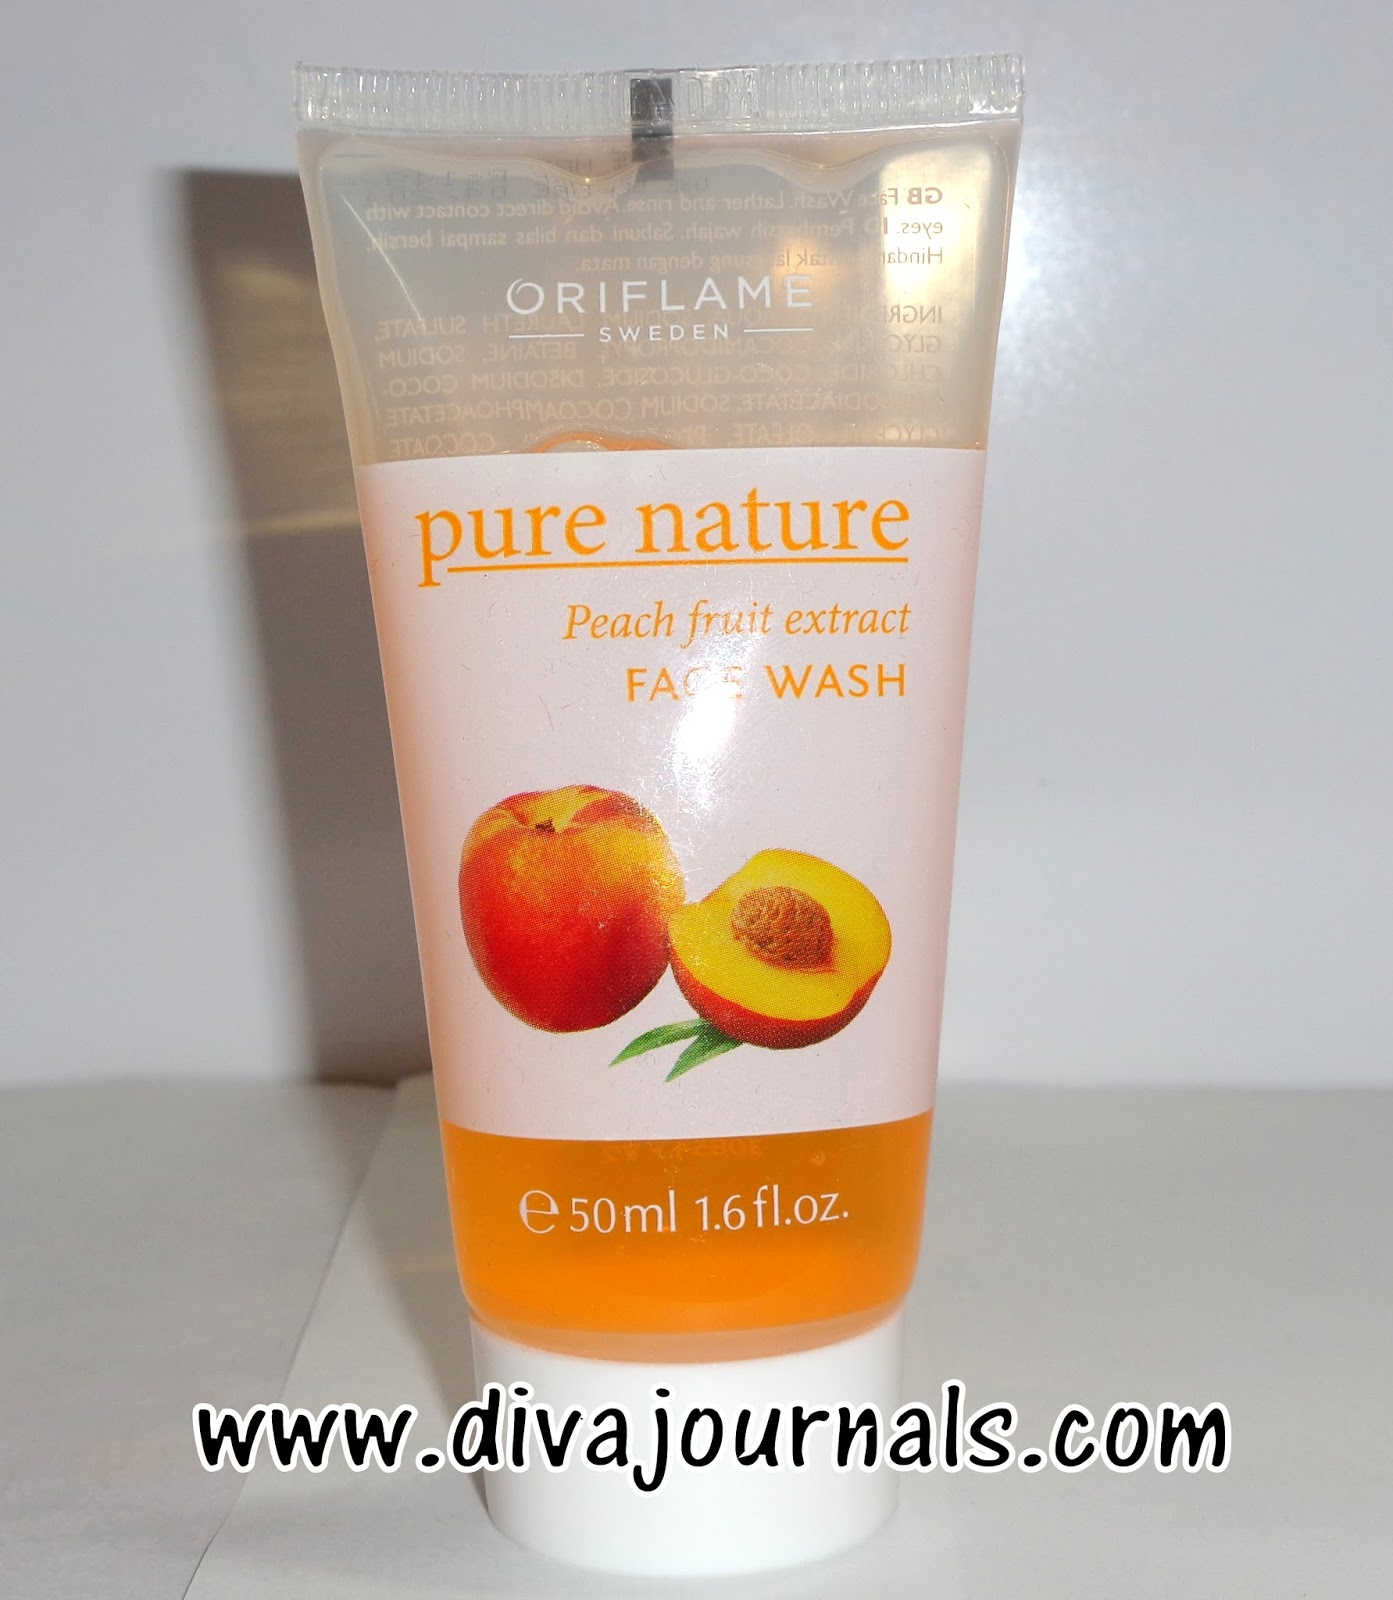 Oriflame Pure Nature Peach Fruit Extract Face wash